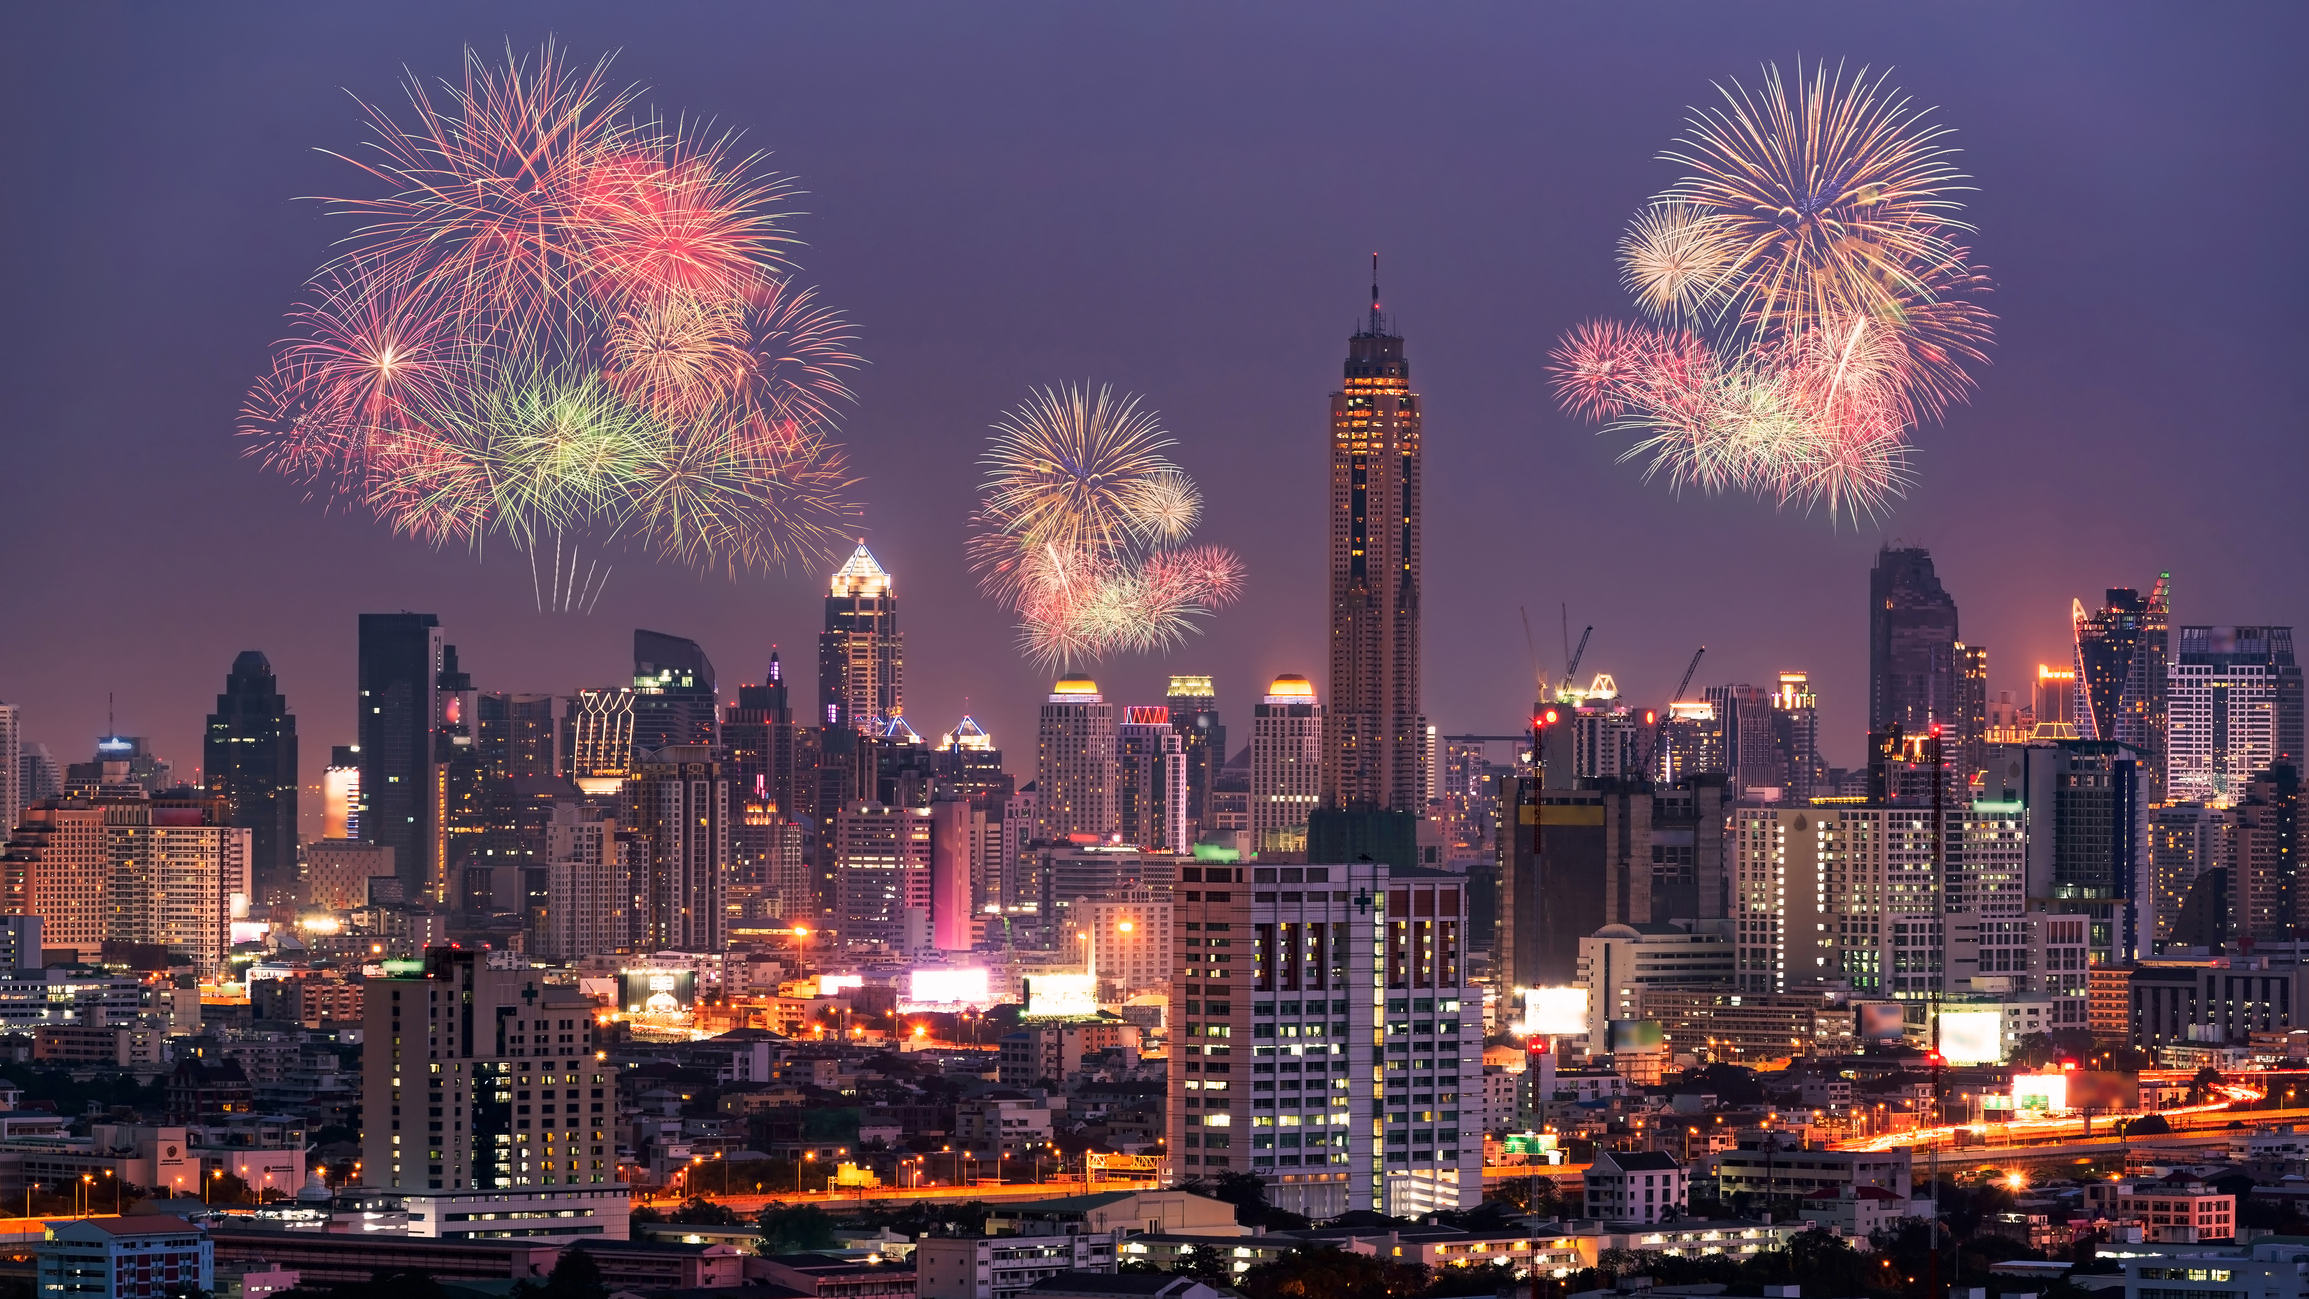 An exhaustive guide to the best New Year's Eve parties in Southeast Asia